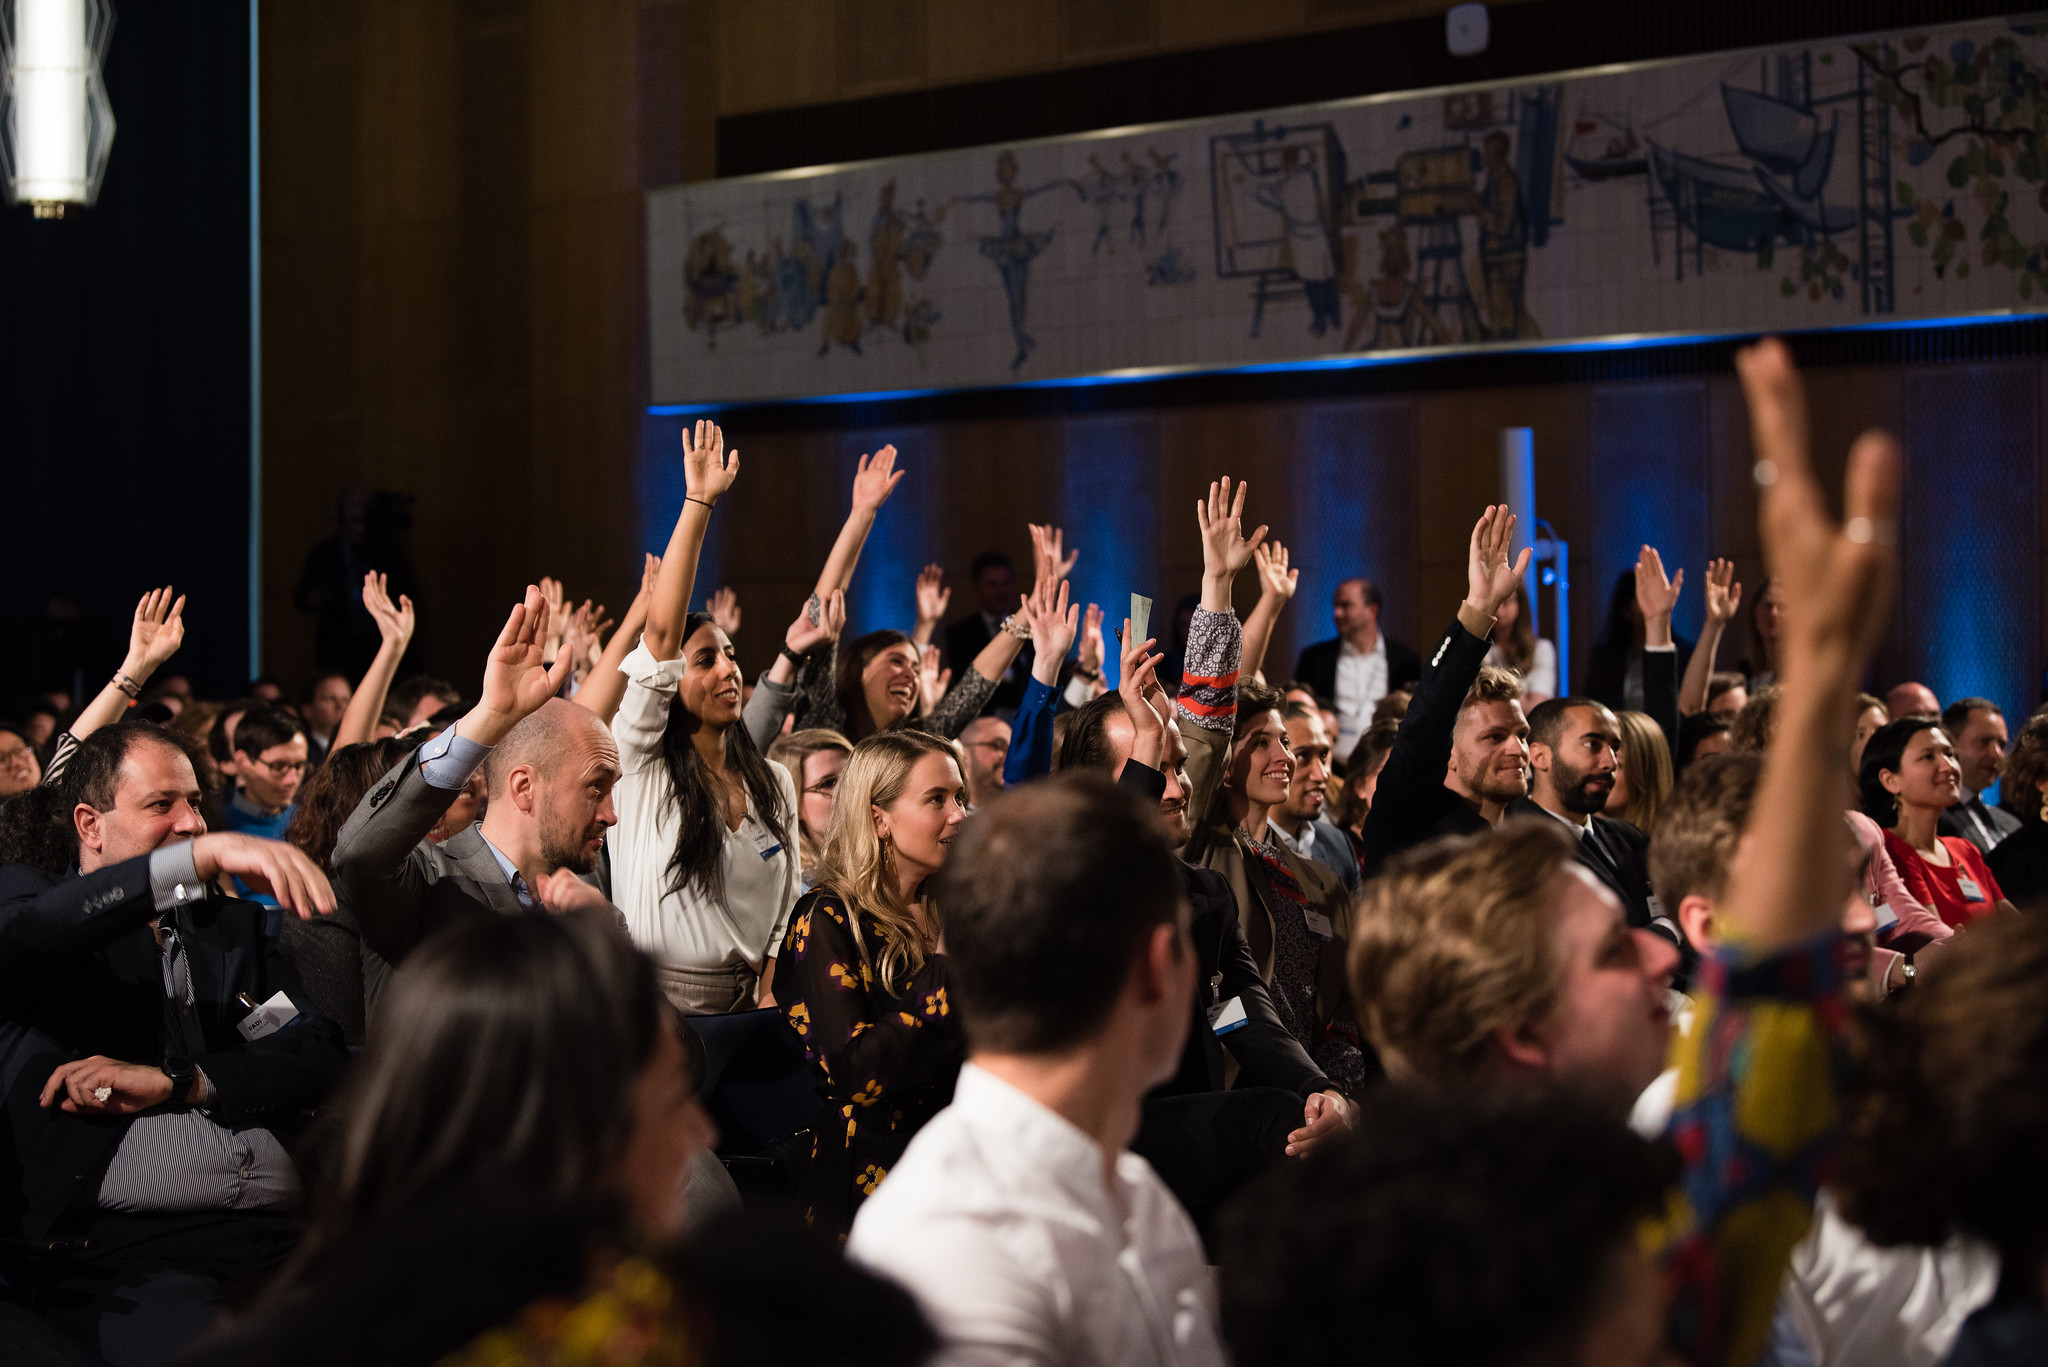 People raising their hands at President Barack Obama's town hall event at ESMT Berlin